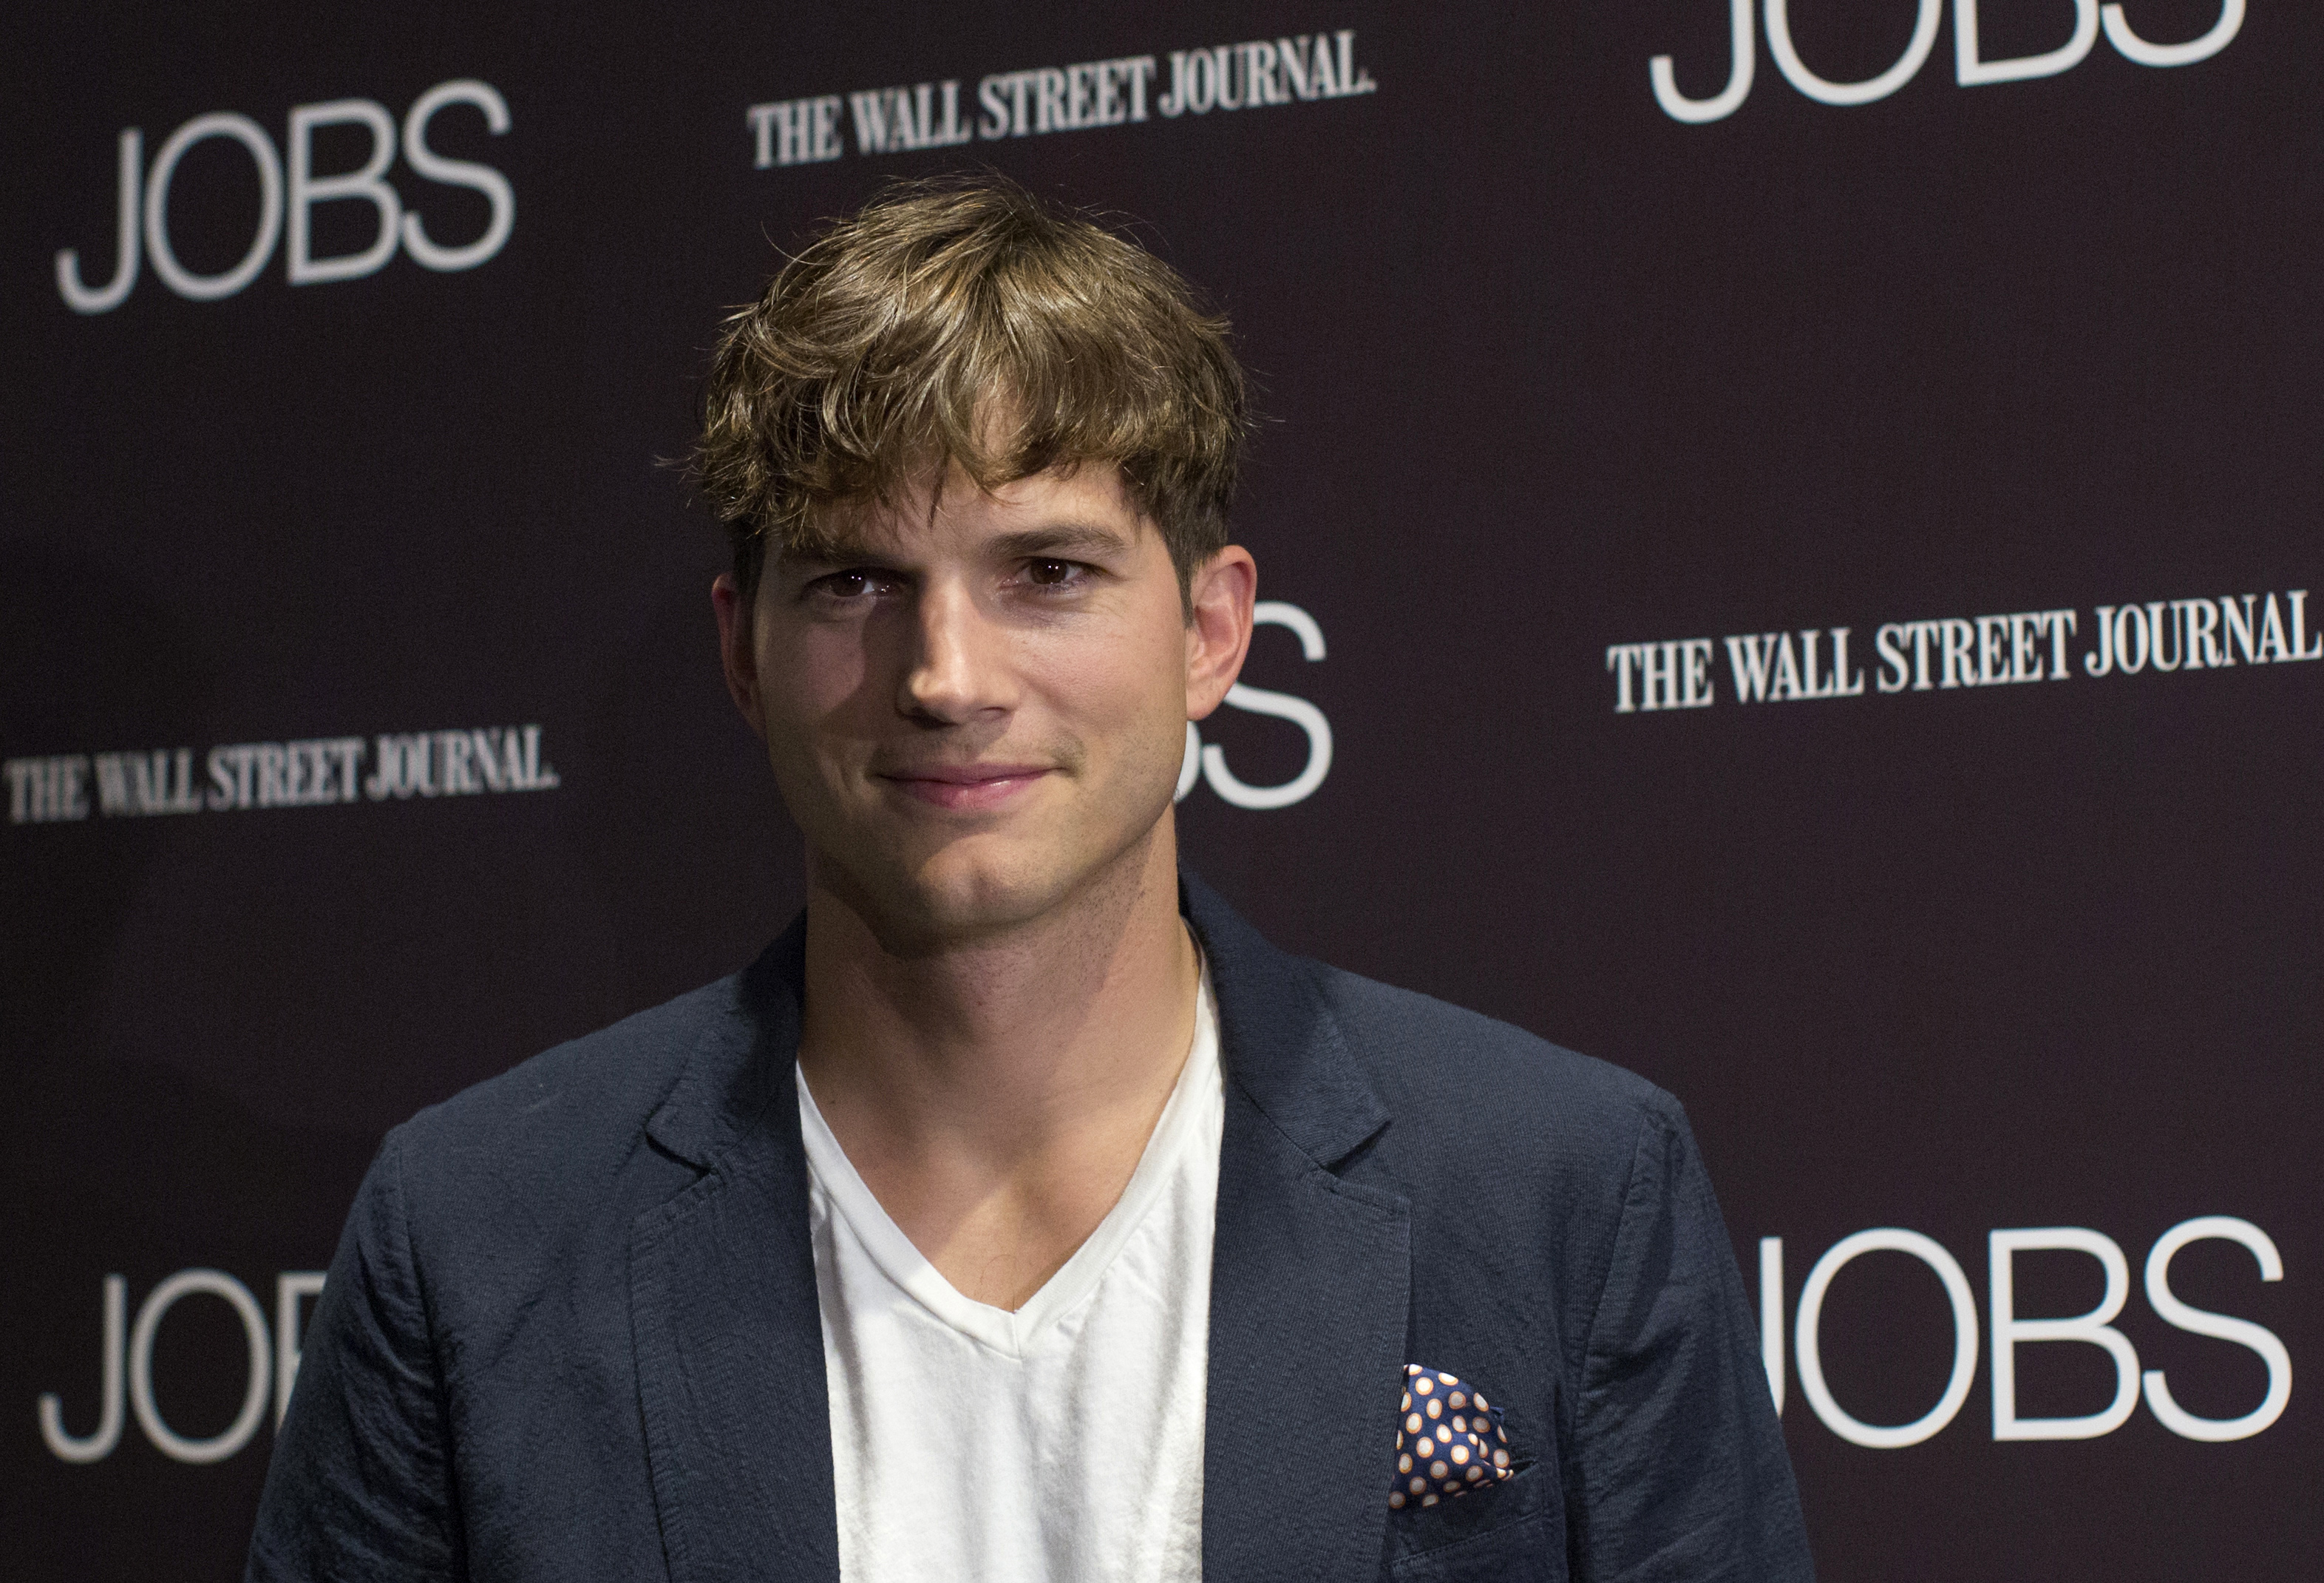 Ashton Kutcher: I stopped listening to Charlie Sheen